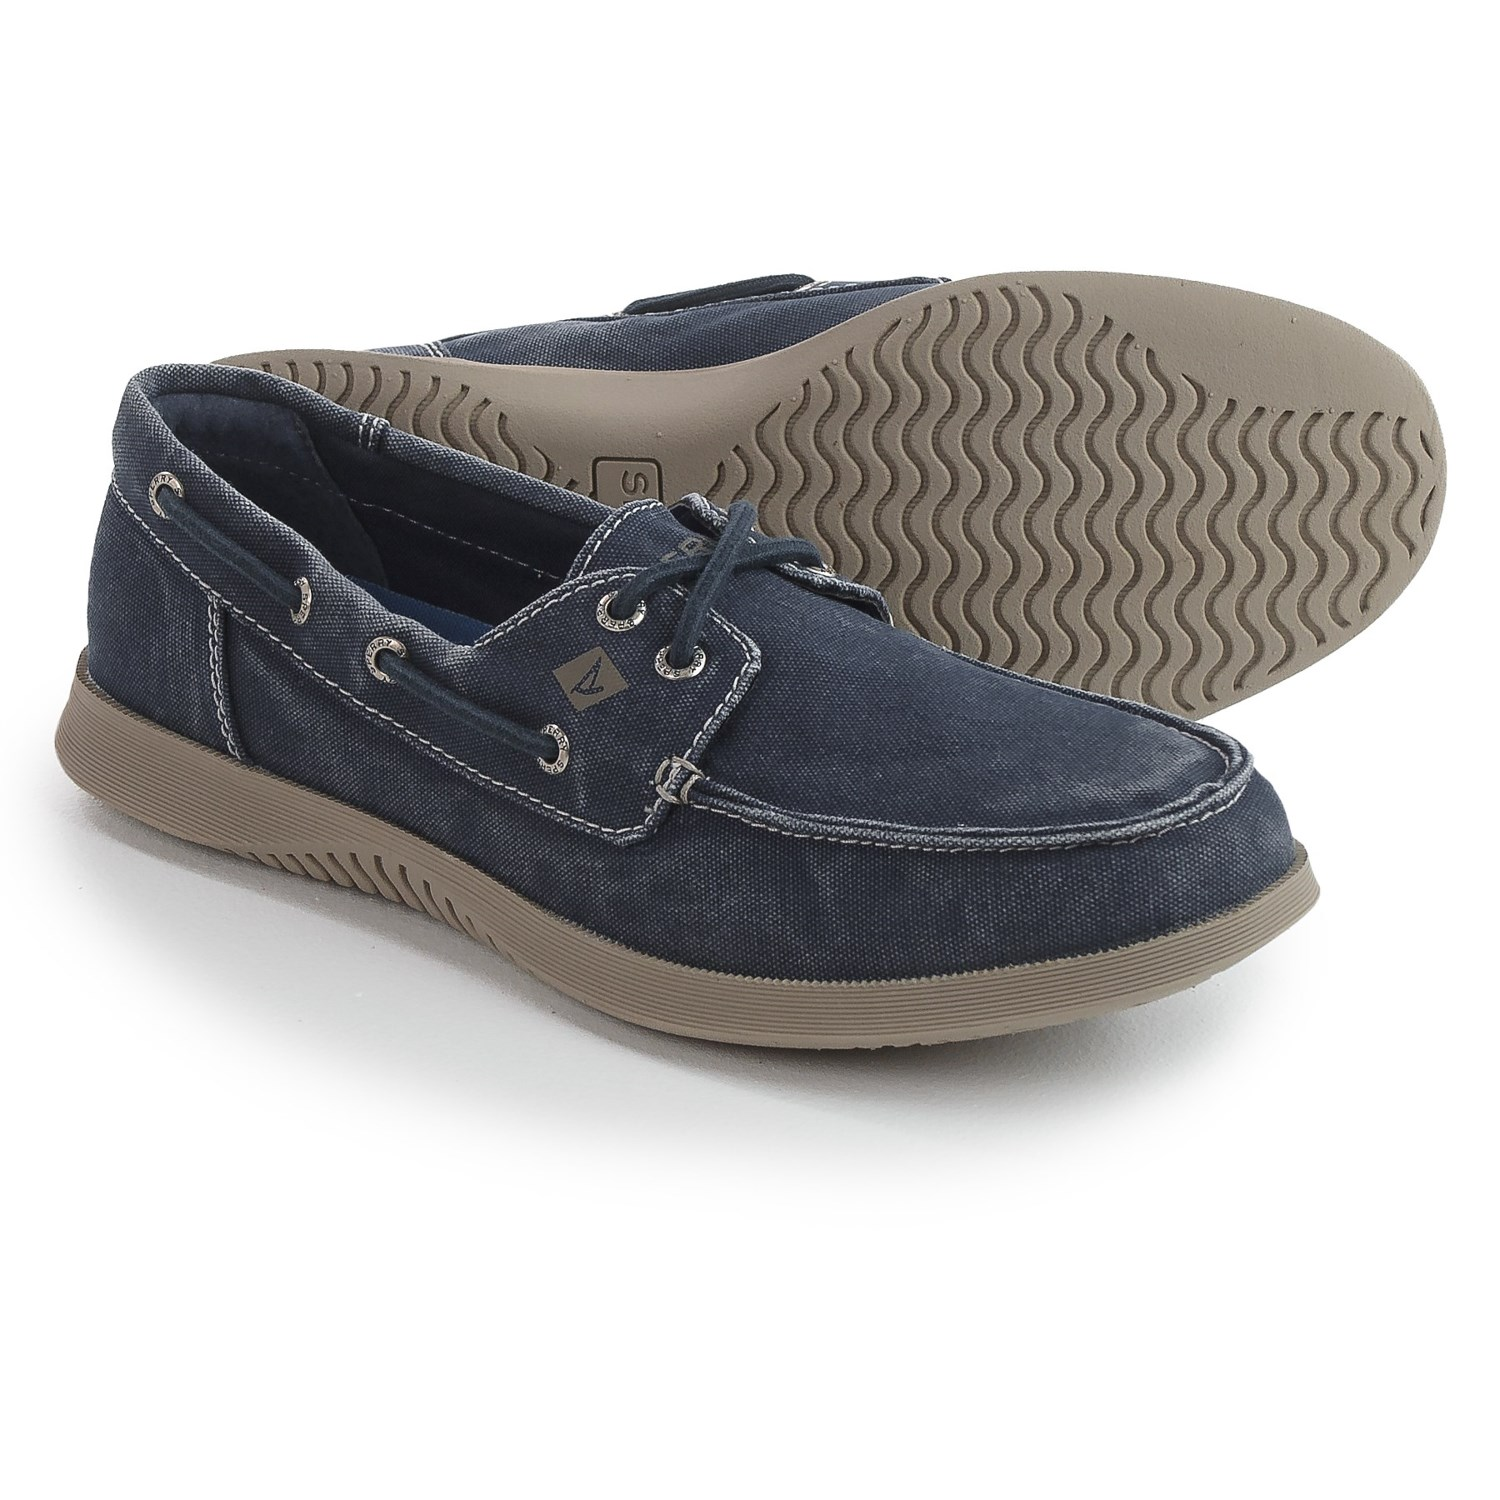 Buy Sperry Shoes Online